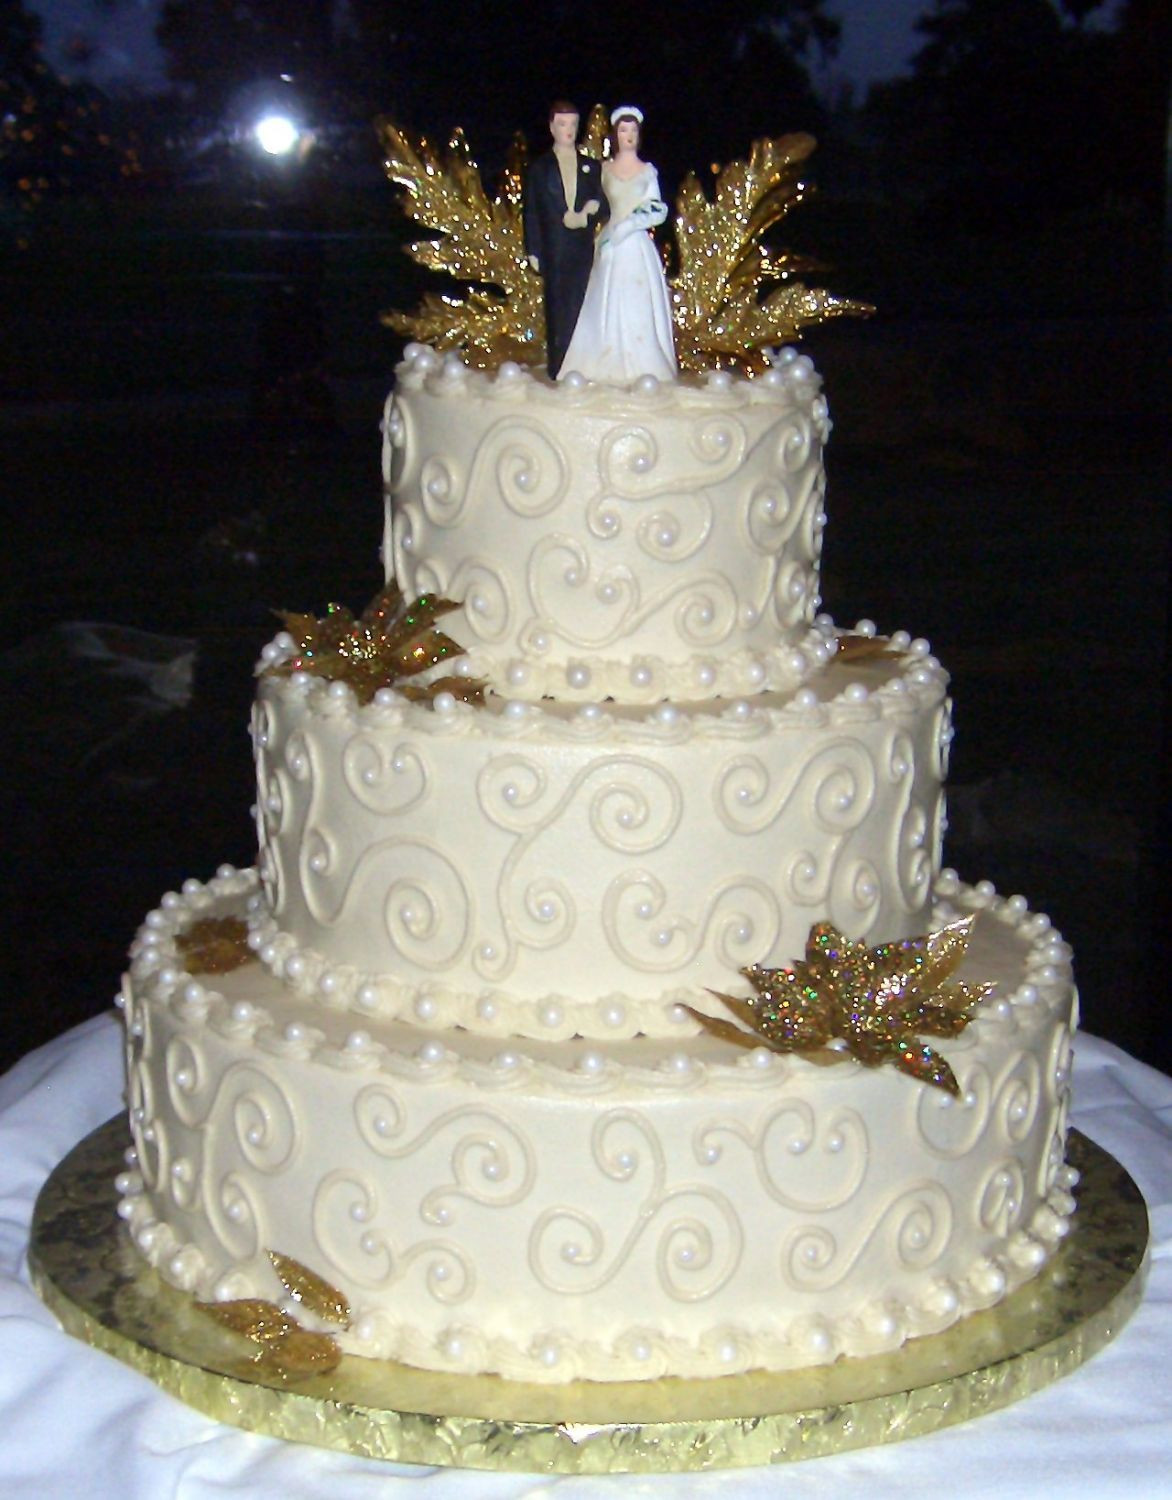 50Th Wedding Cakes  50th Anniversary Wedding Cake All buttercream icing and